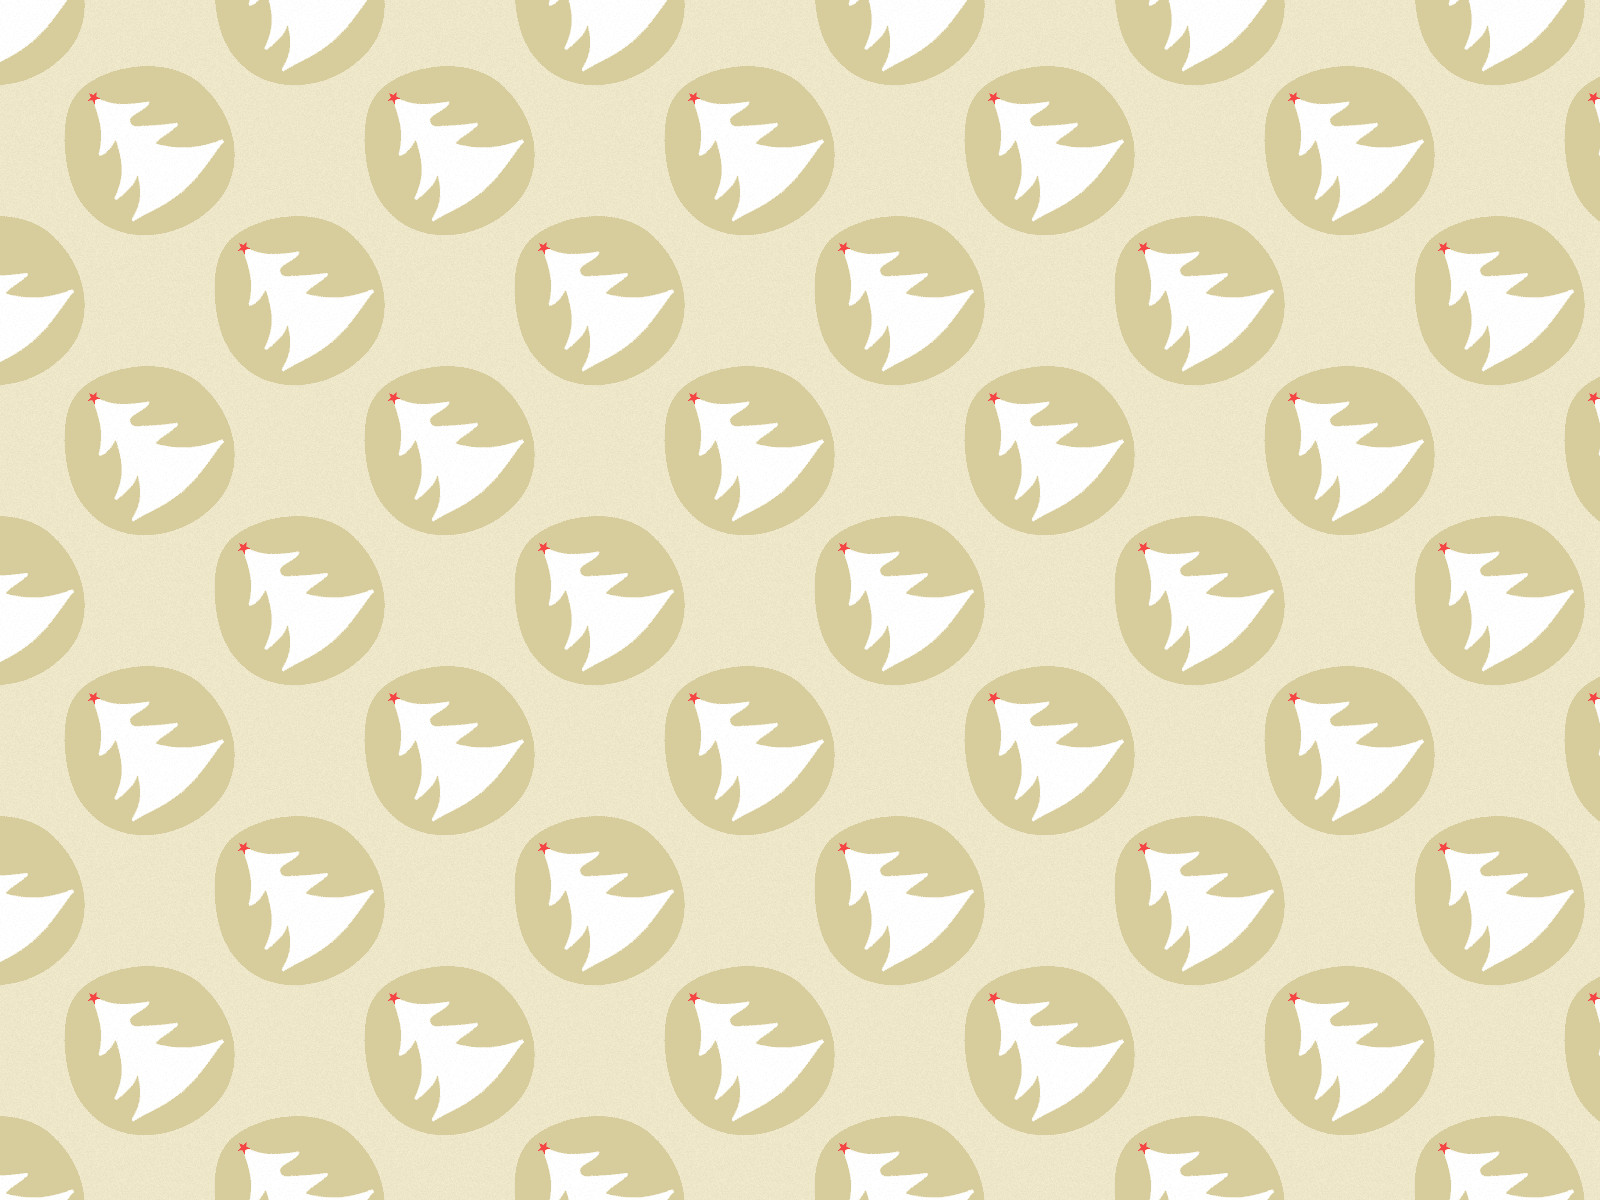 Christmas Tree Pattern New Free Christmas Backgrounds Wallpapers & Shop Patterns Of Great 46 Images Christmas Tree Pattern